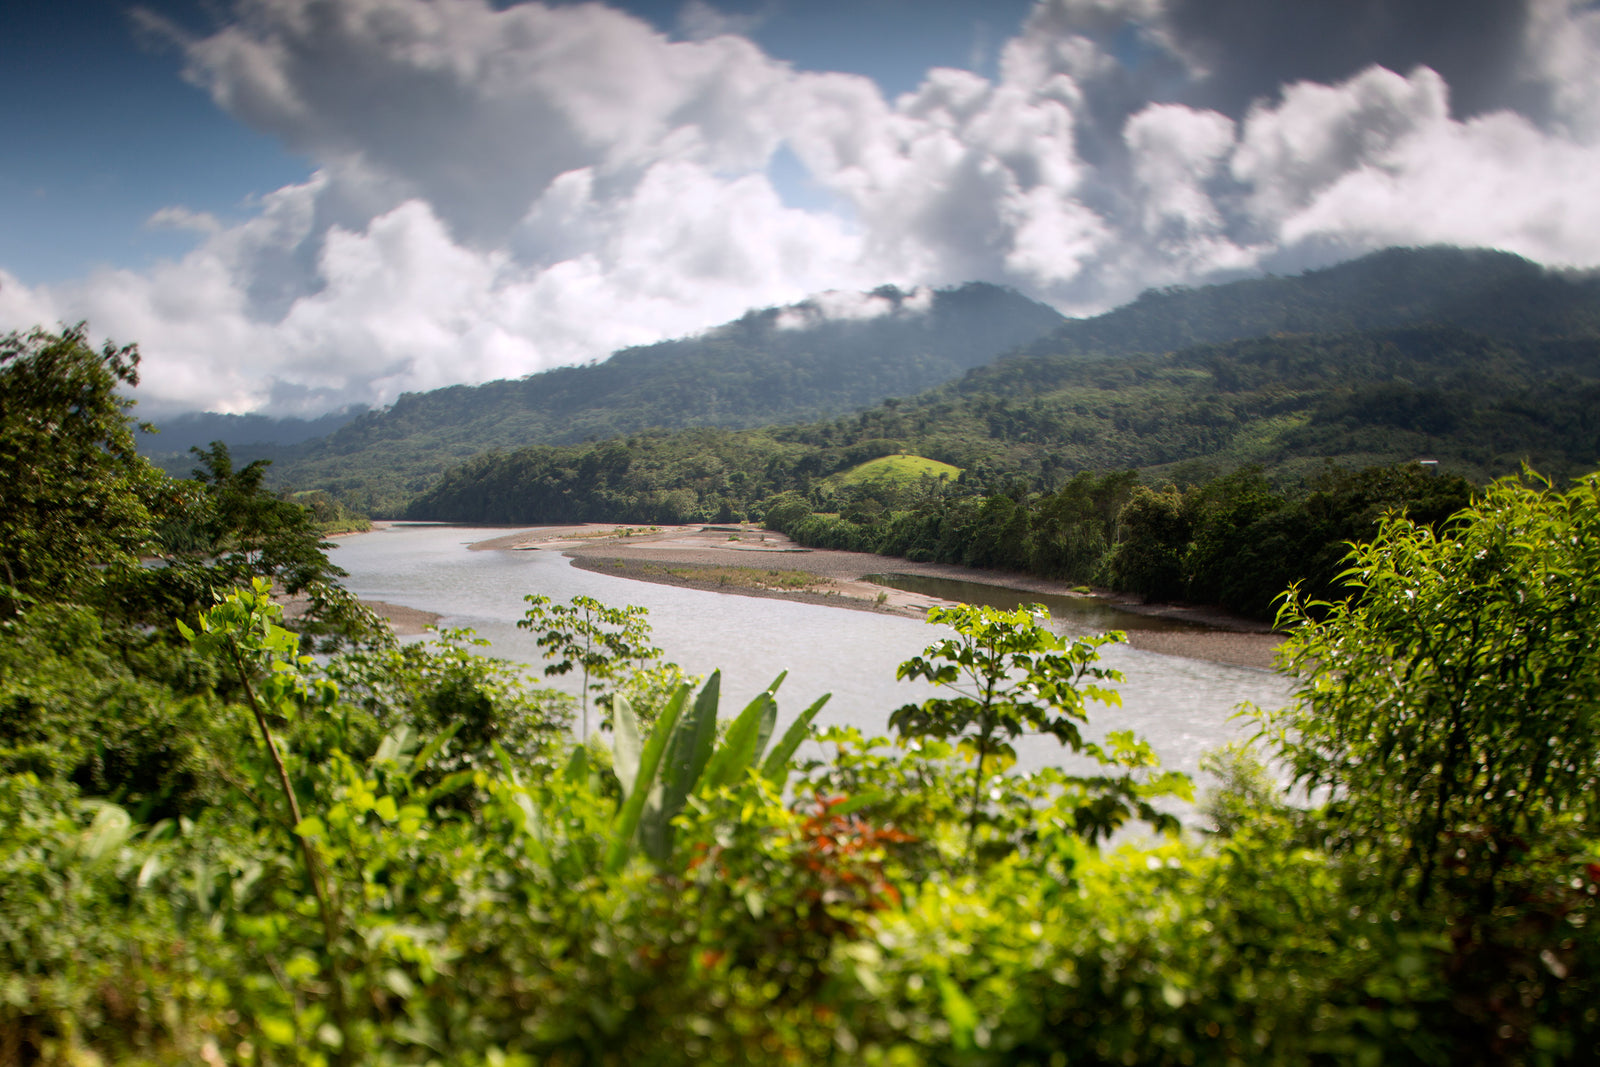 An Alliance for the Amazon: Joining Together To Fight for Change Article